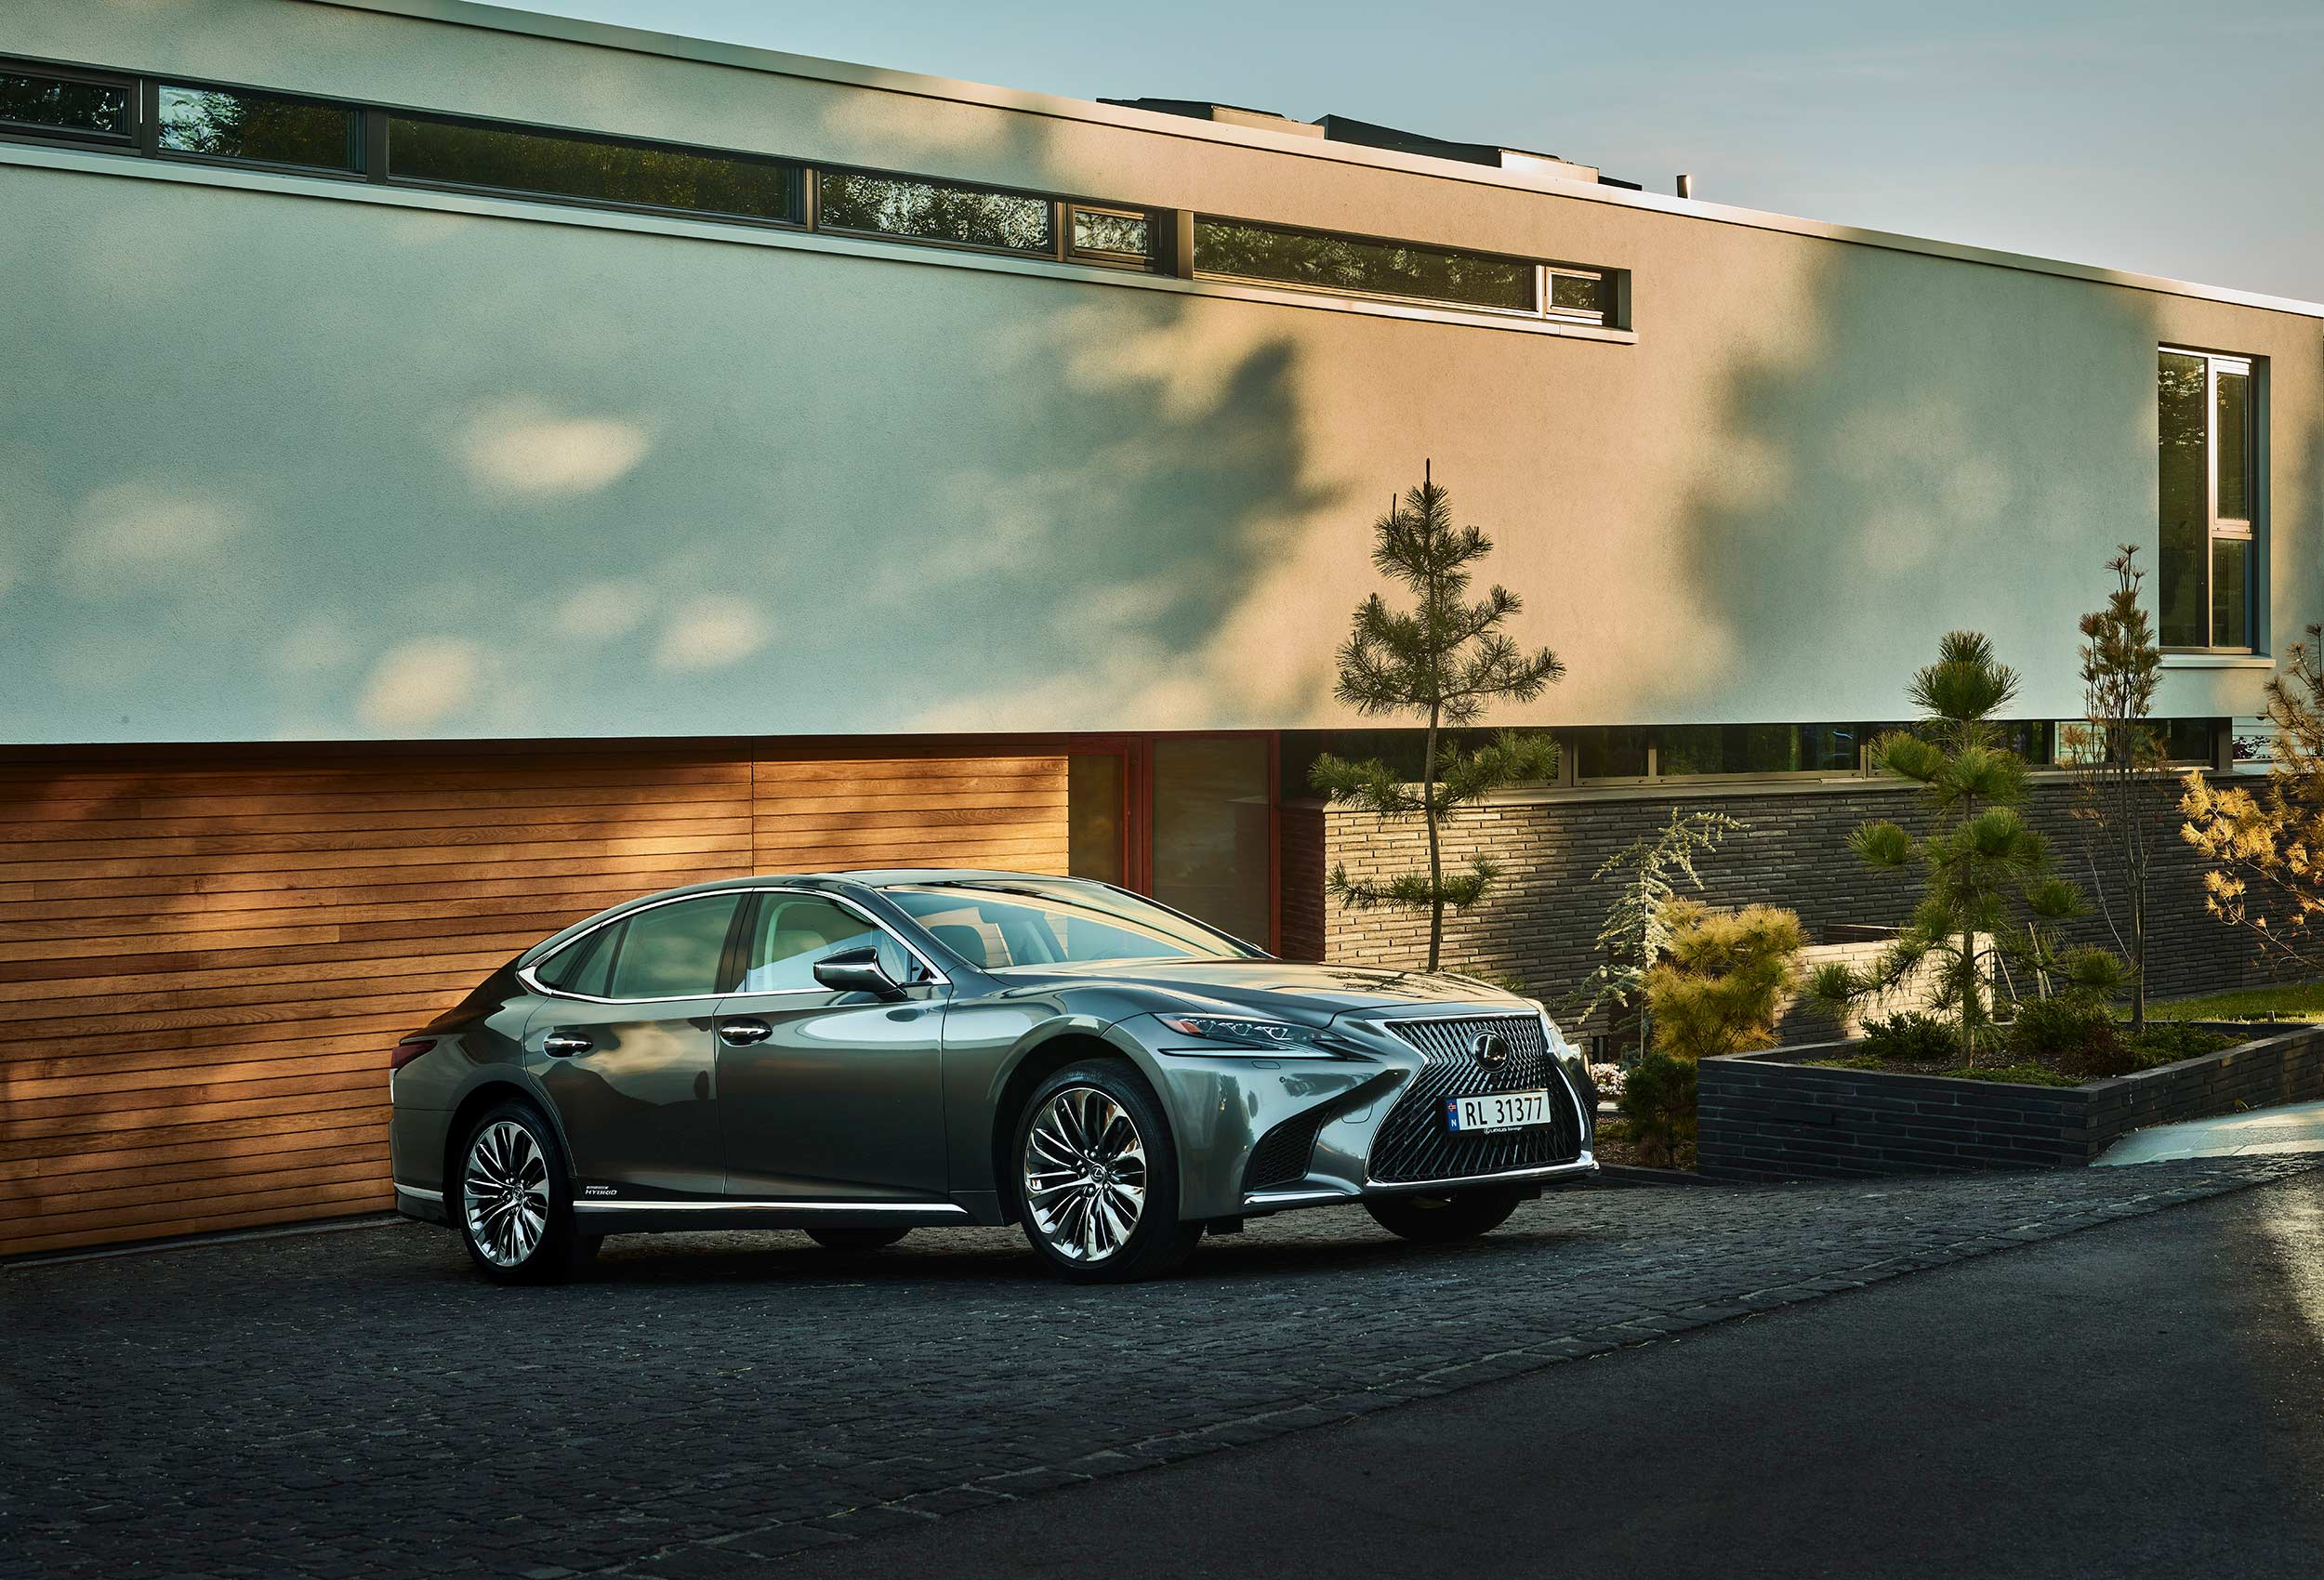 Lexus carphotography by Tom Haga